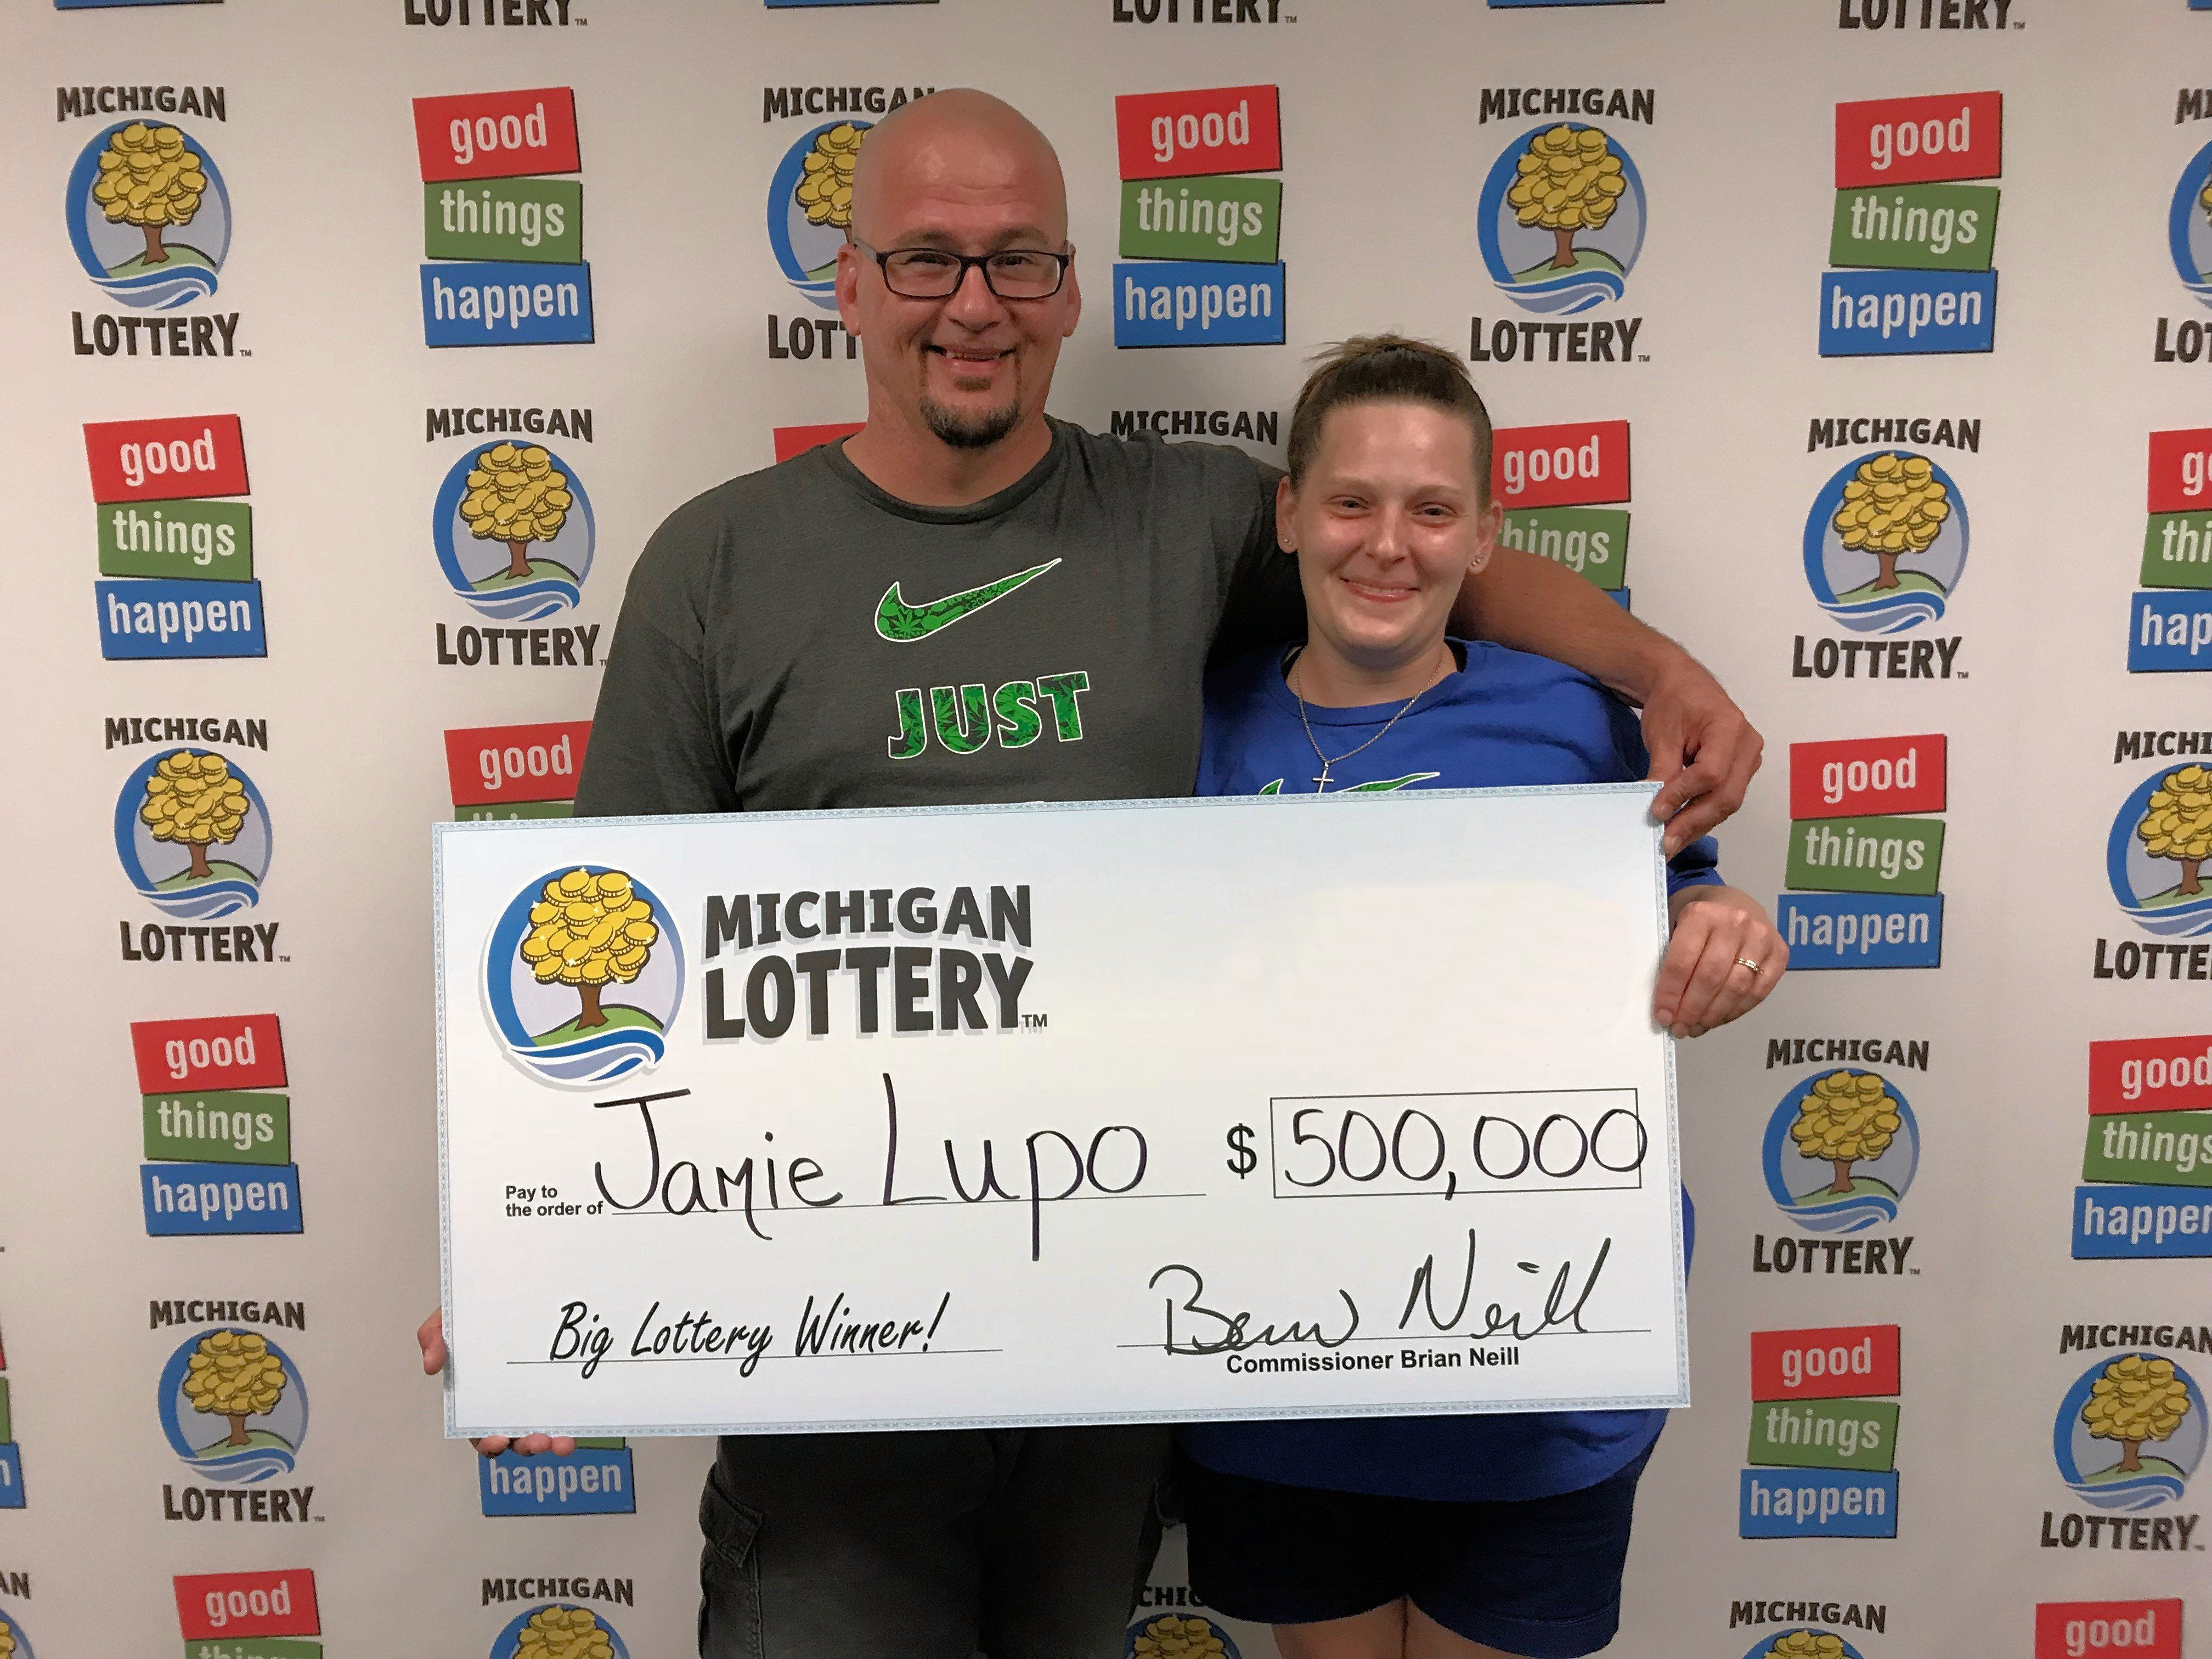 Michigan Lottery — Blogs, Pictures, and more on WordPress